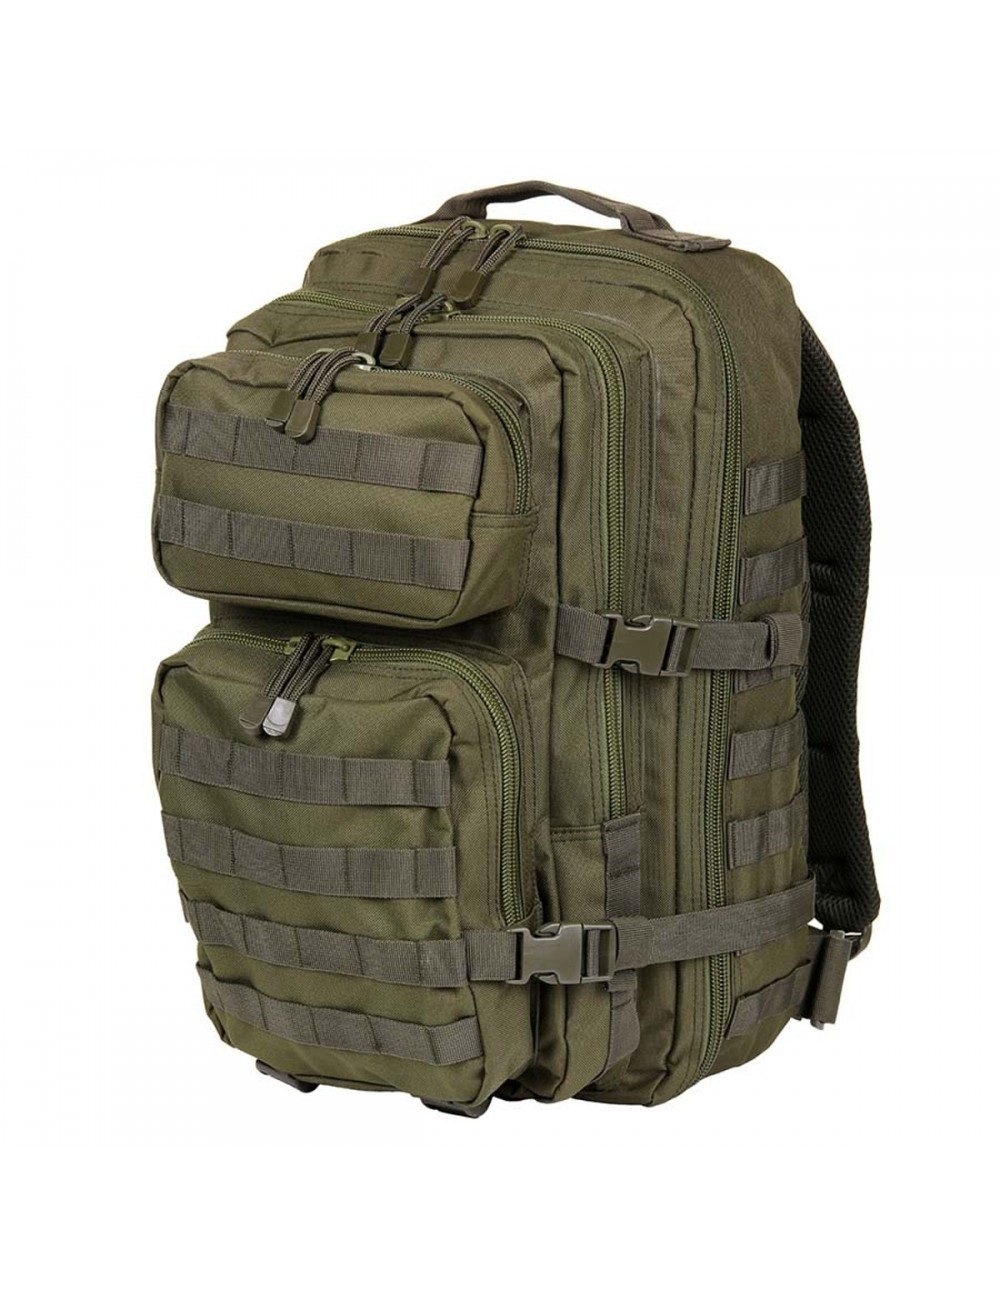 101 Inc Mountain-Rucksack 45 liter - ArmyGreen